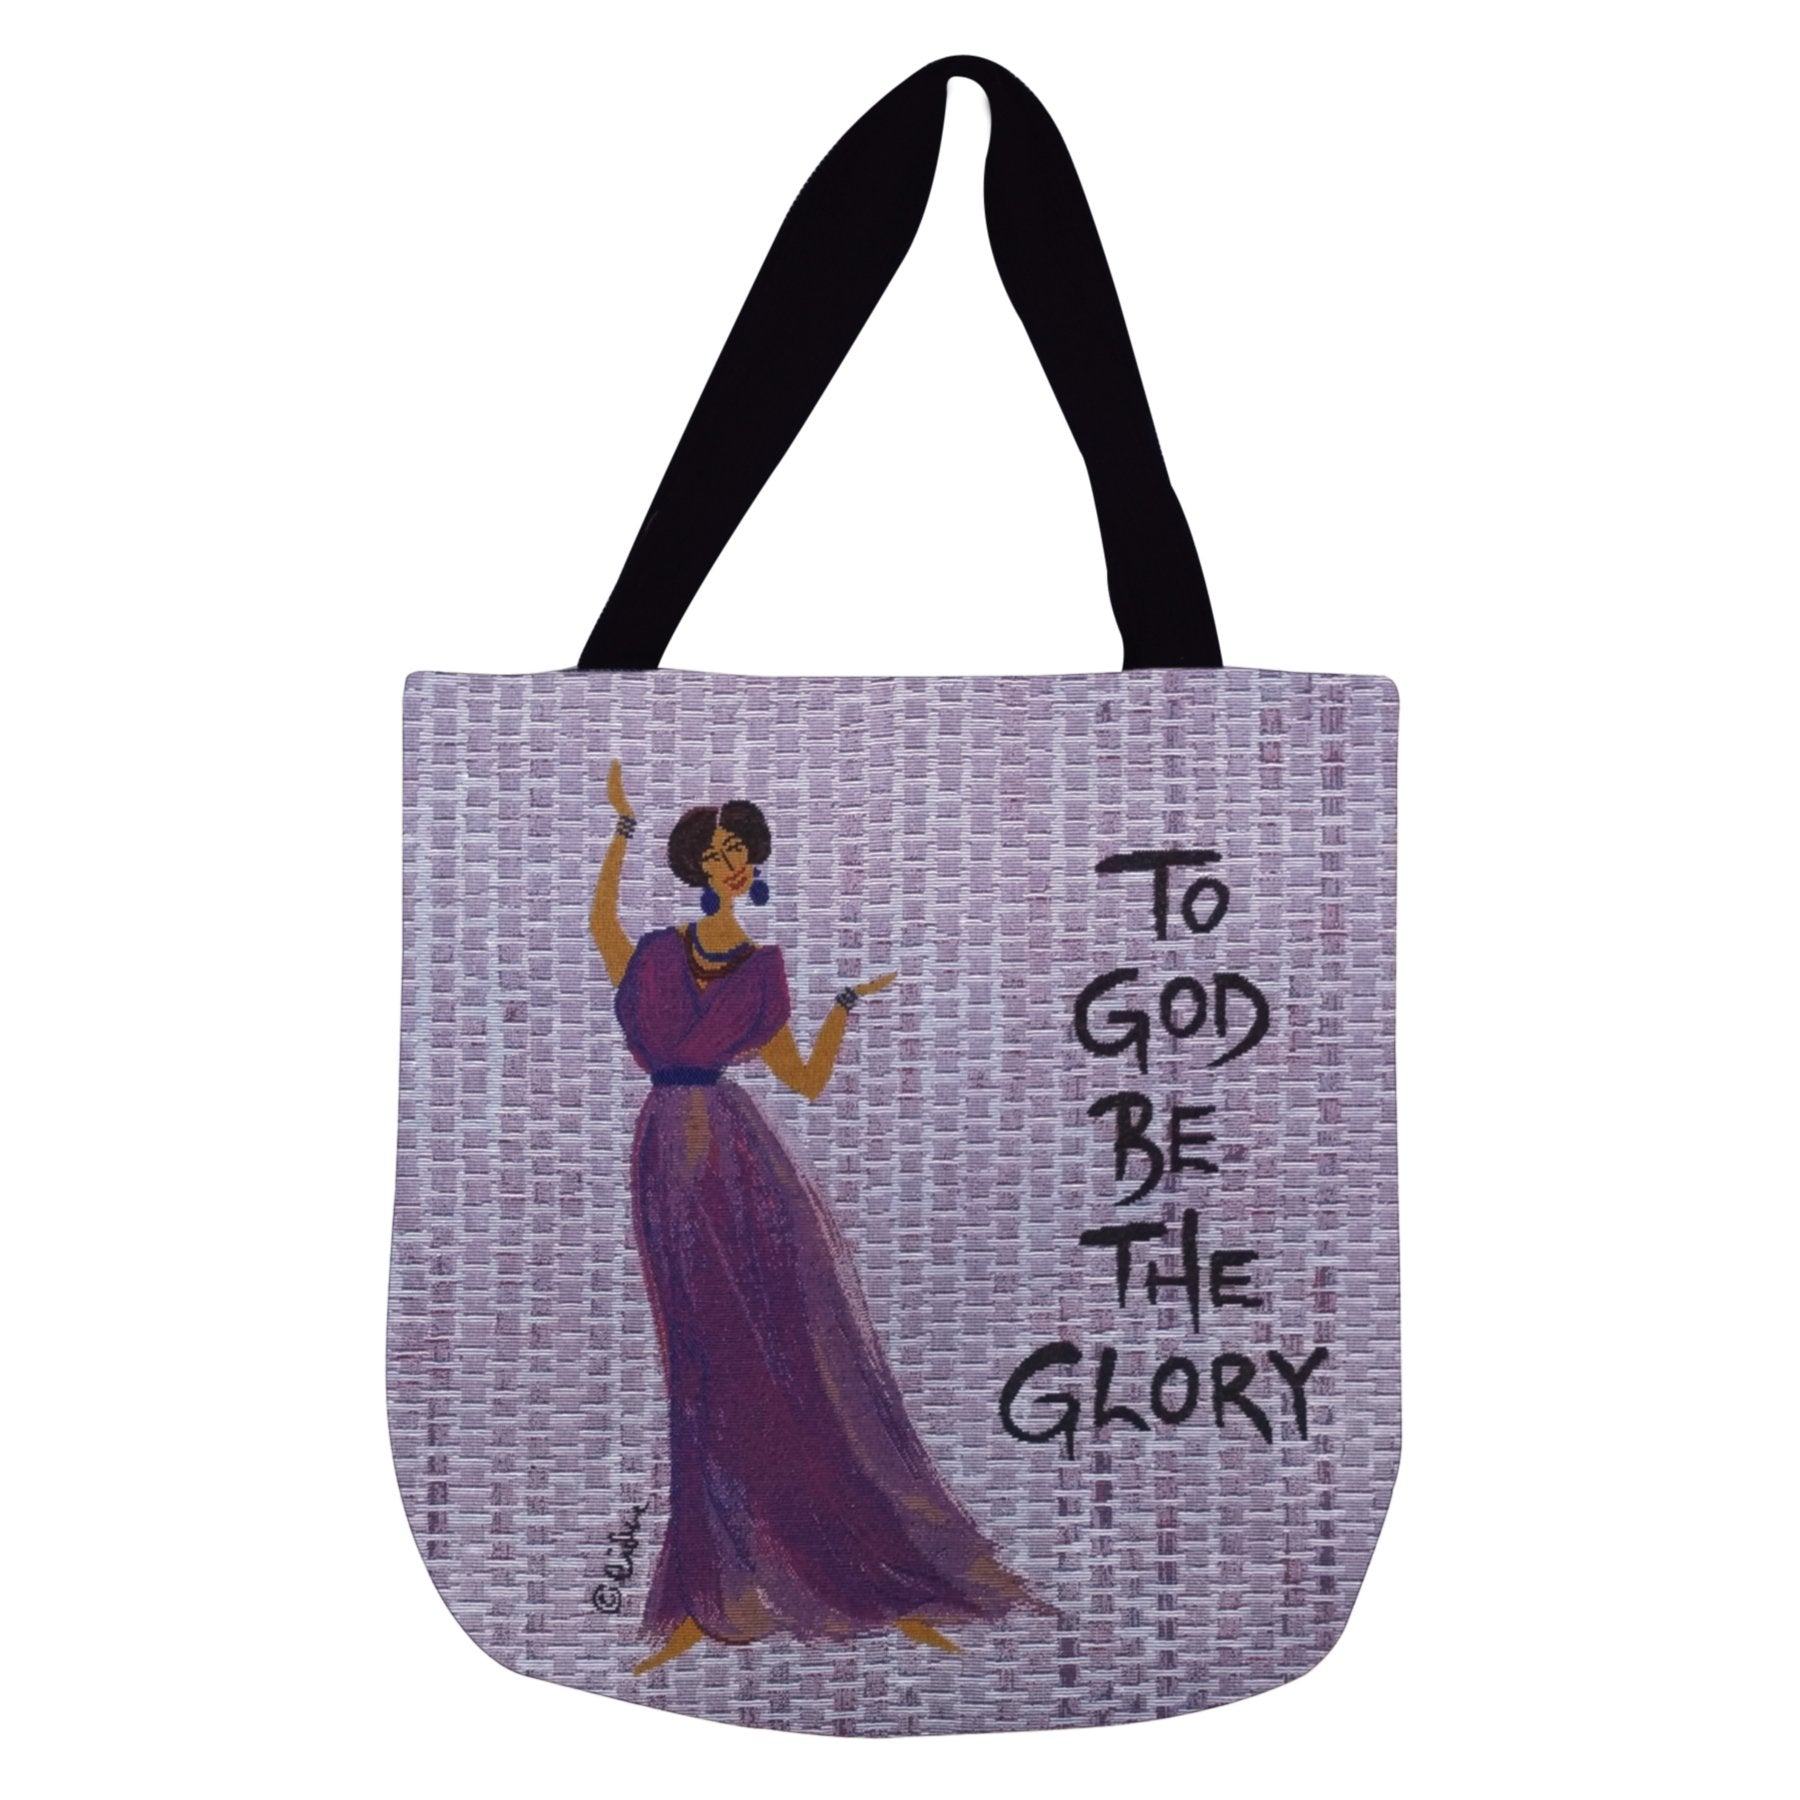 To God Be the Glory: African American Woven Tote Bag by Cidne Wallace